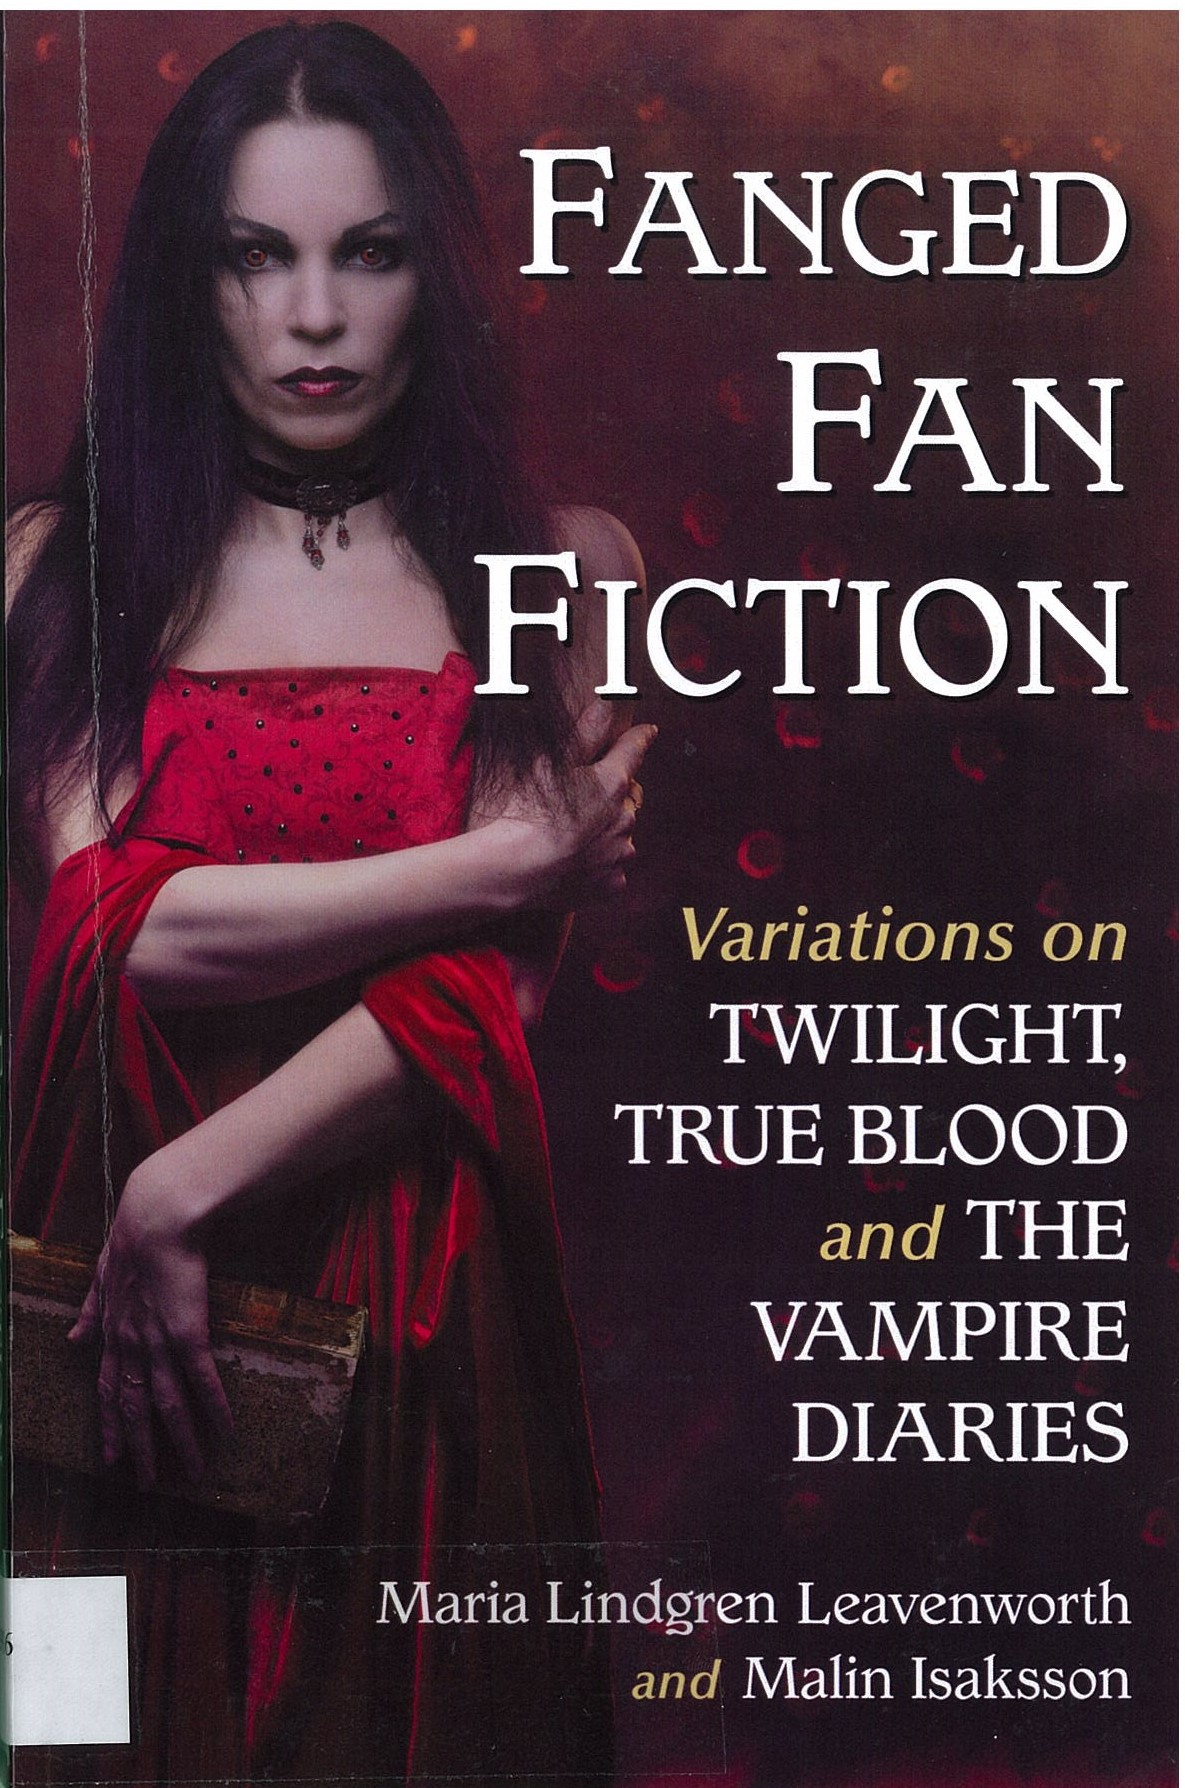 Fanged Fan Fiction - variations on Twilight, True Blood and The Vampire Diaries